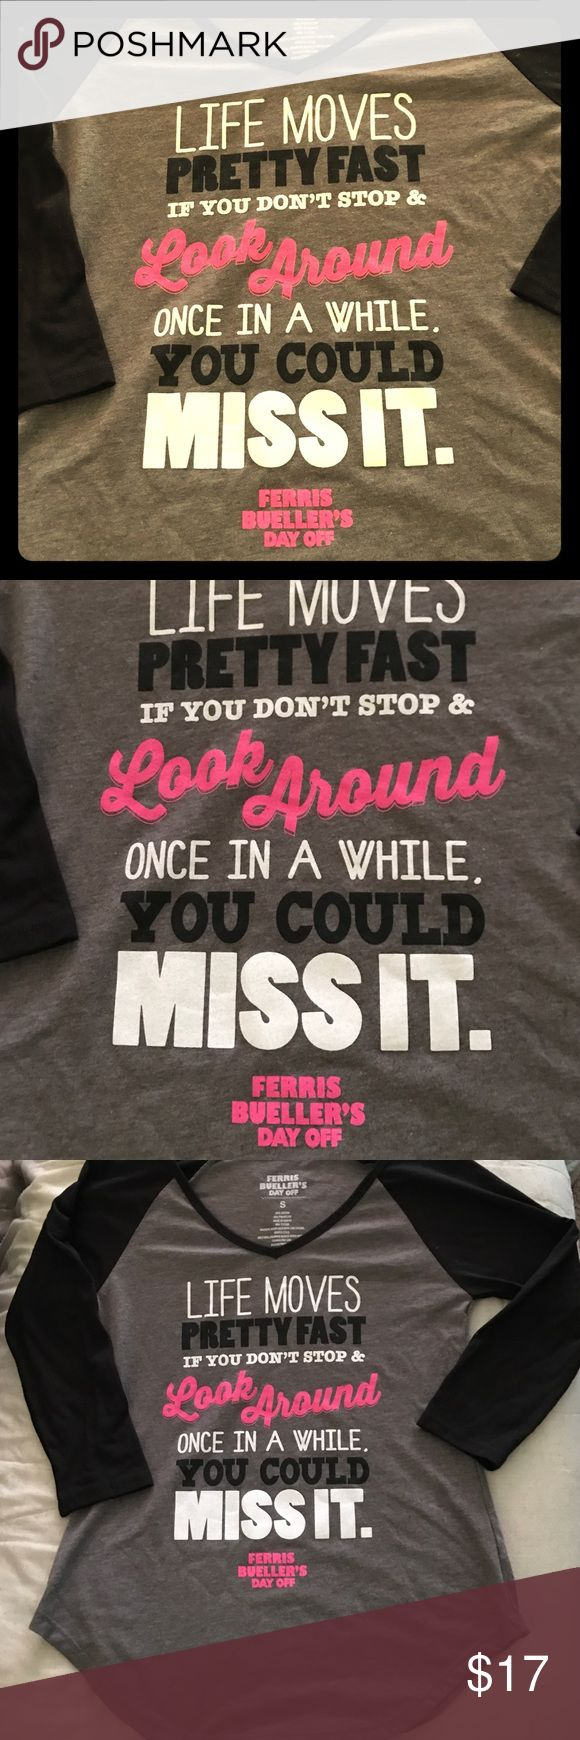 Ferris Bueller Life Moves Pretty Fast Quote 398 Best Ferris Bueller's Day Off Images On Pinterest  Ferris